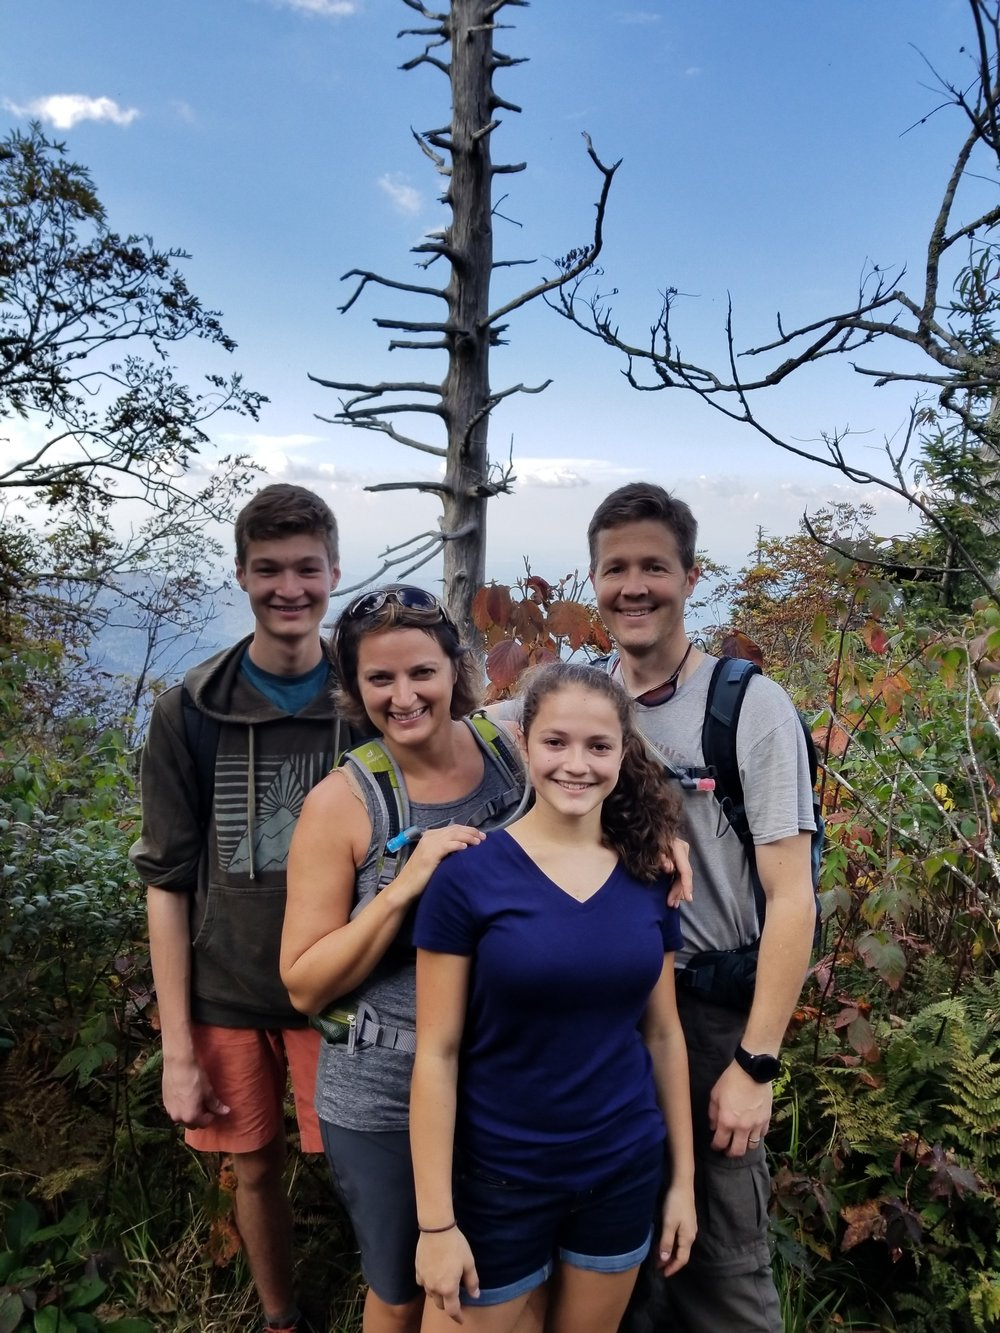 Karah Thompson hiking with her family in the Smokies.